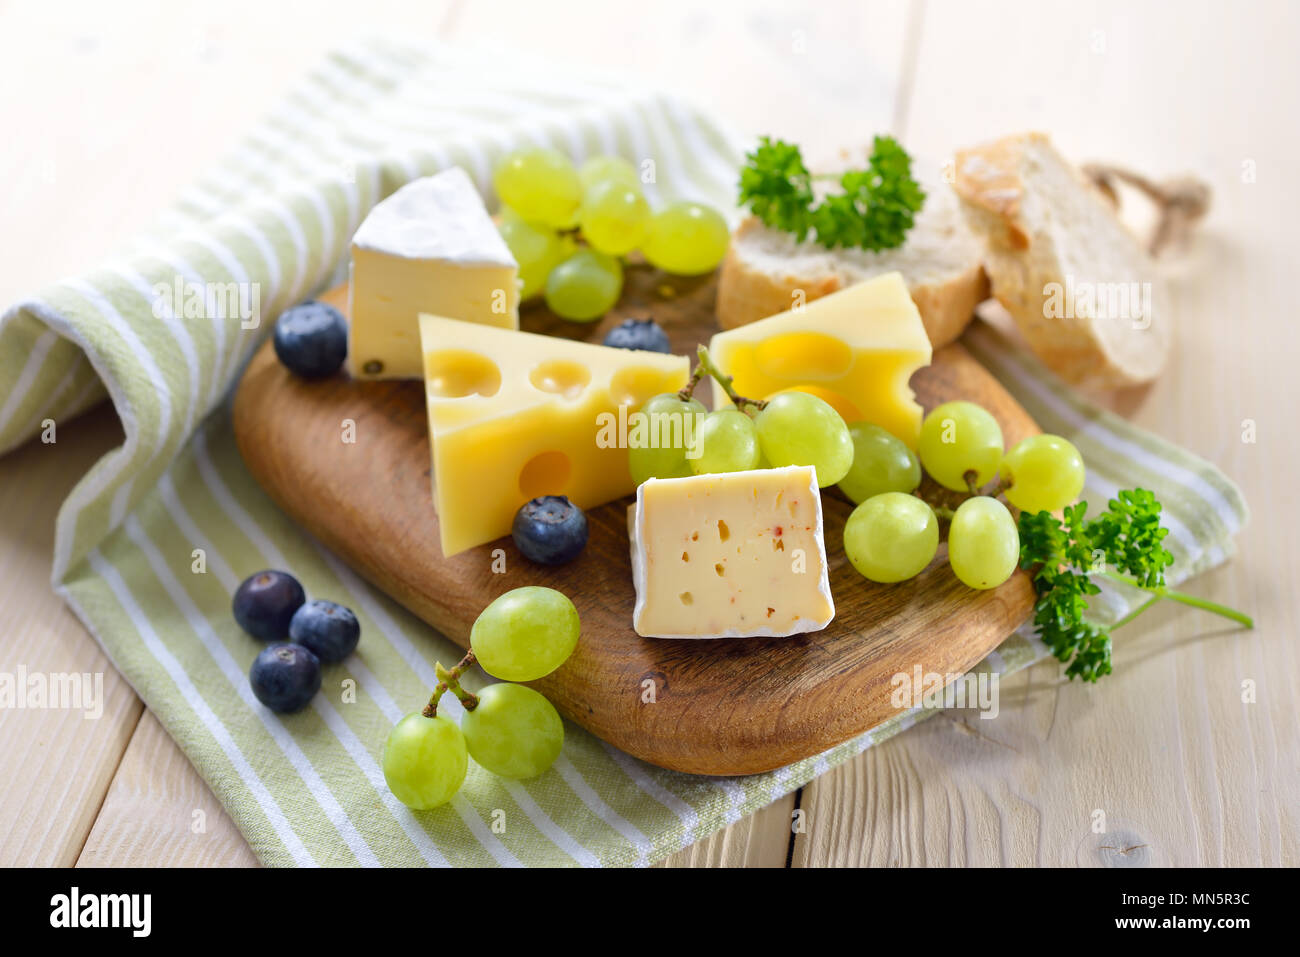 Cheese snack with serveral kinds, served with bread and grapes on a wooden cutting board - Stock Image